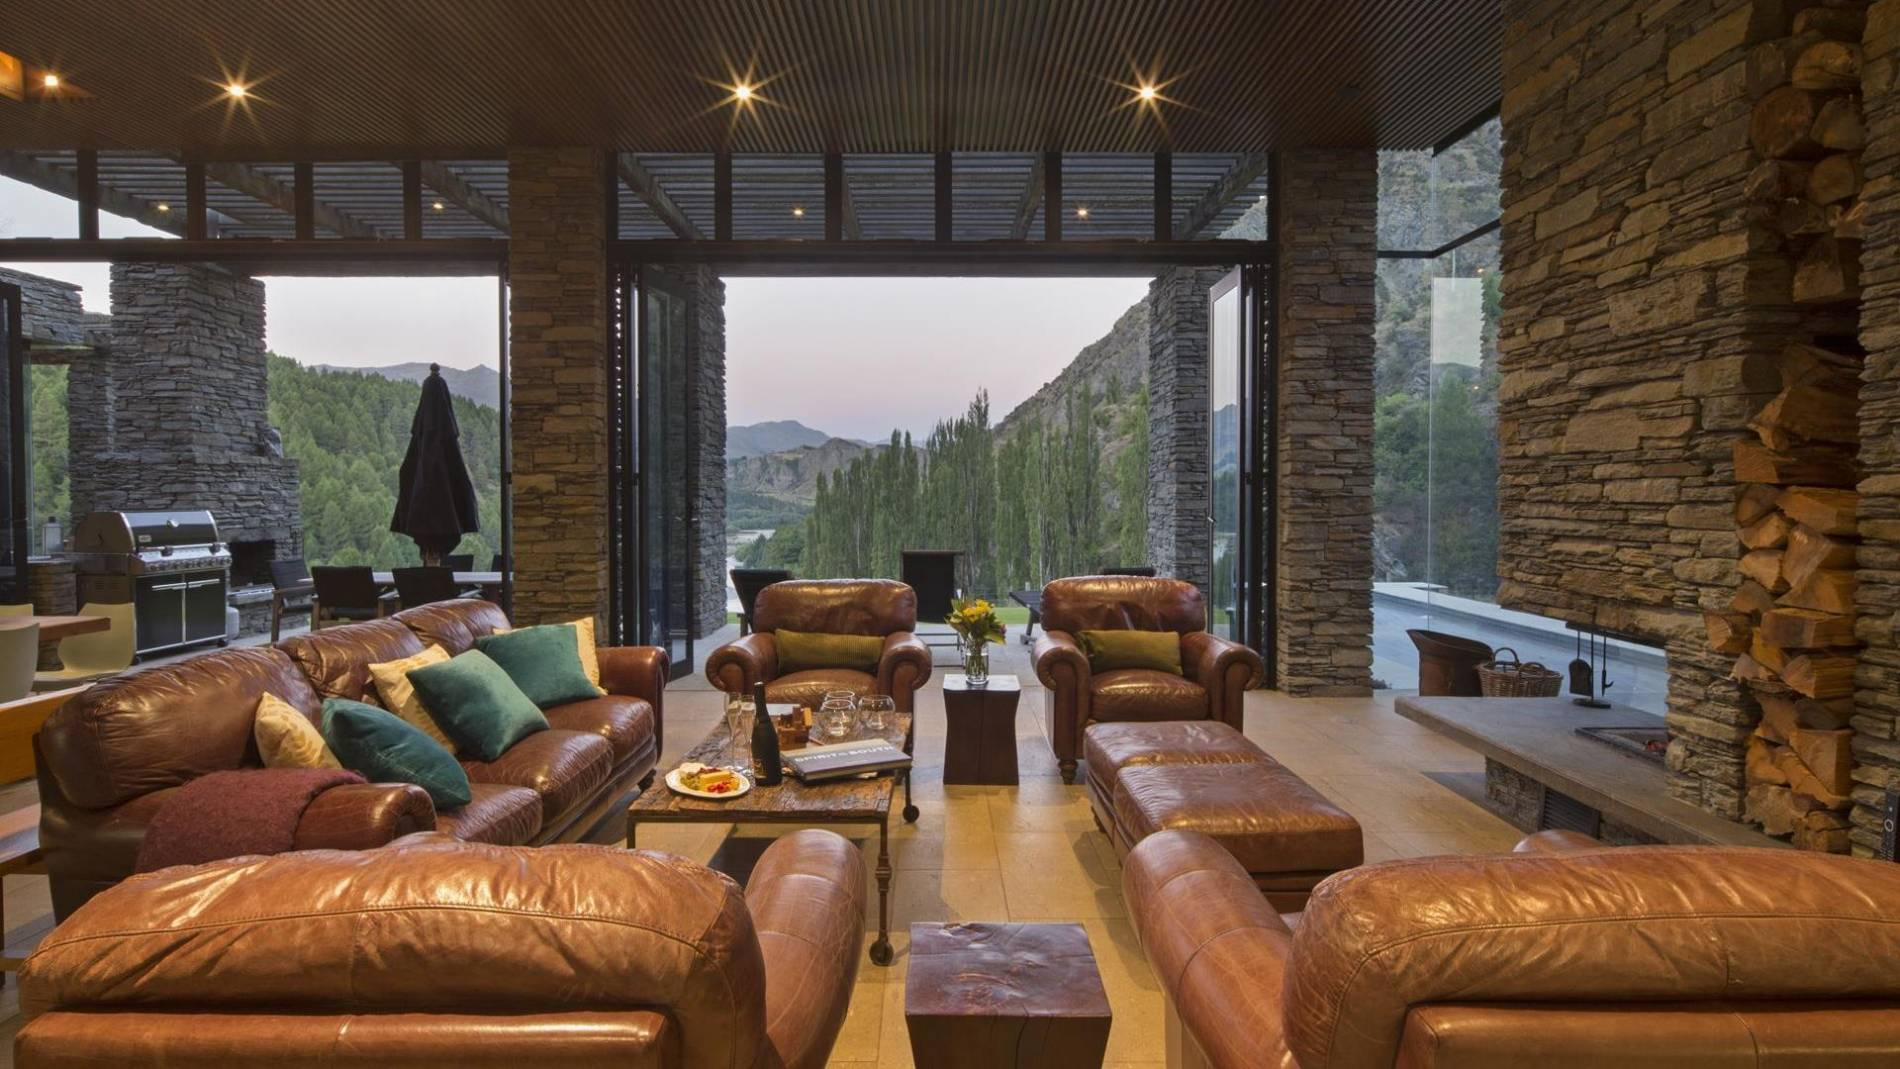 4 Bedroom Luxury House With Lap Pool On Queenstown Hill